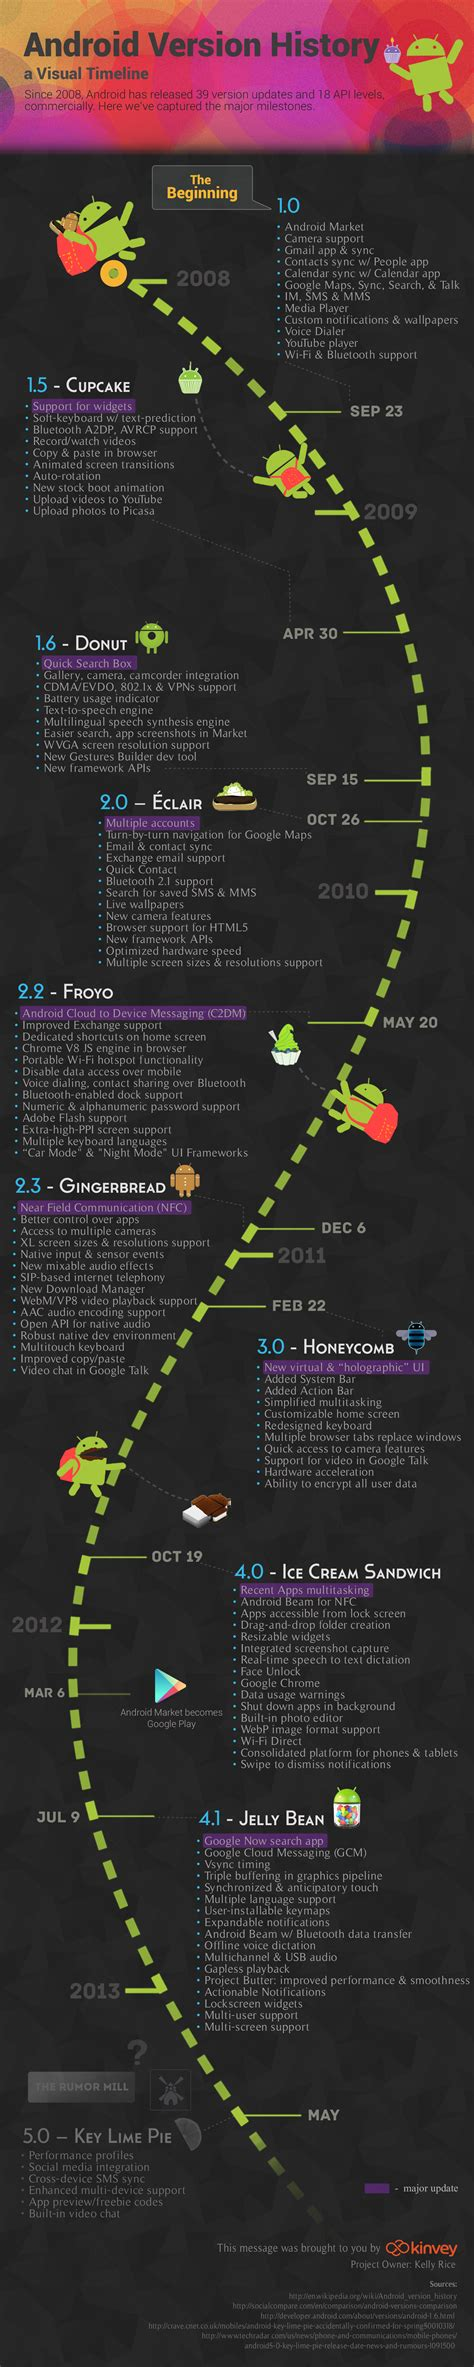 android history android version history a visual timeline infographic enterprise mobile backend as a